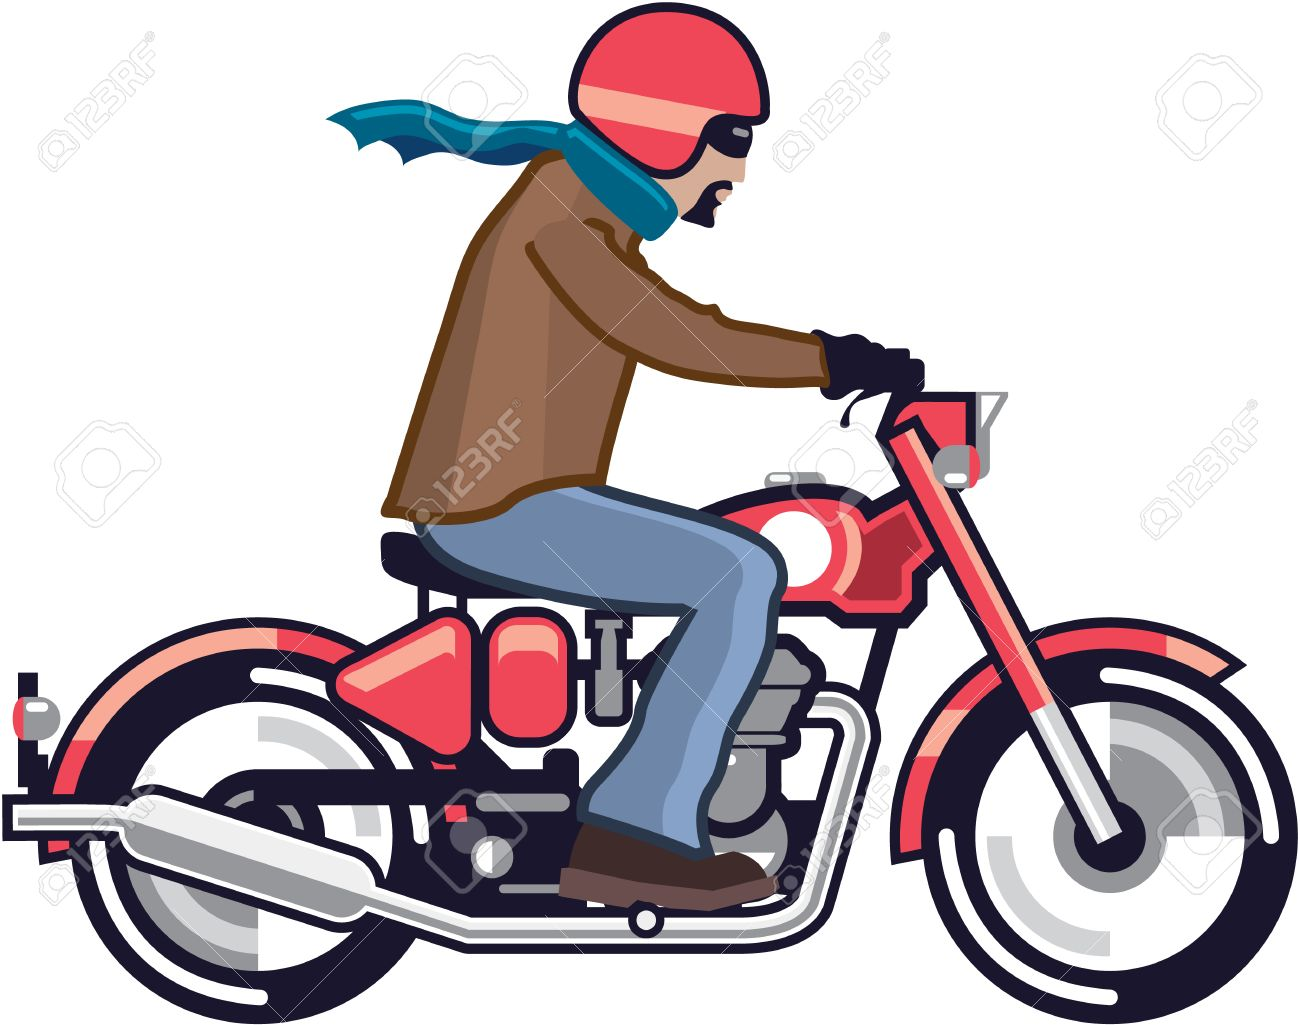 dude on the vintage motorcycle vector illustration clip art royalty rh 123rf com motorcycle vector free free motorcycle vector illustration